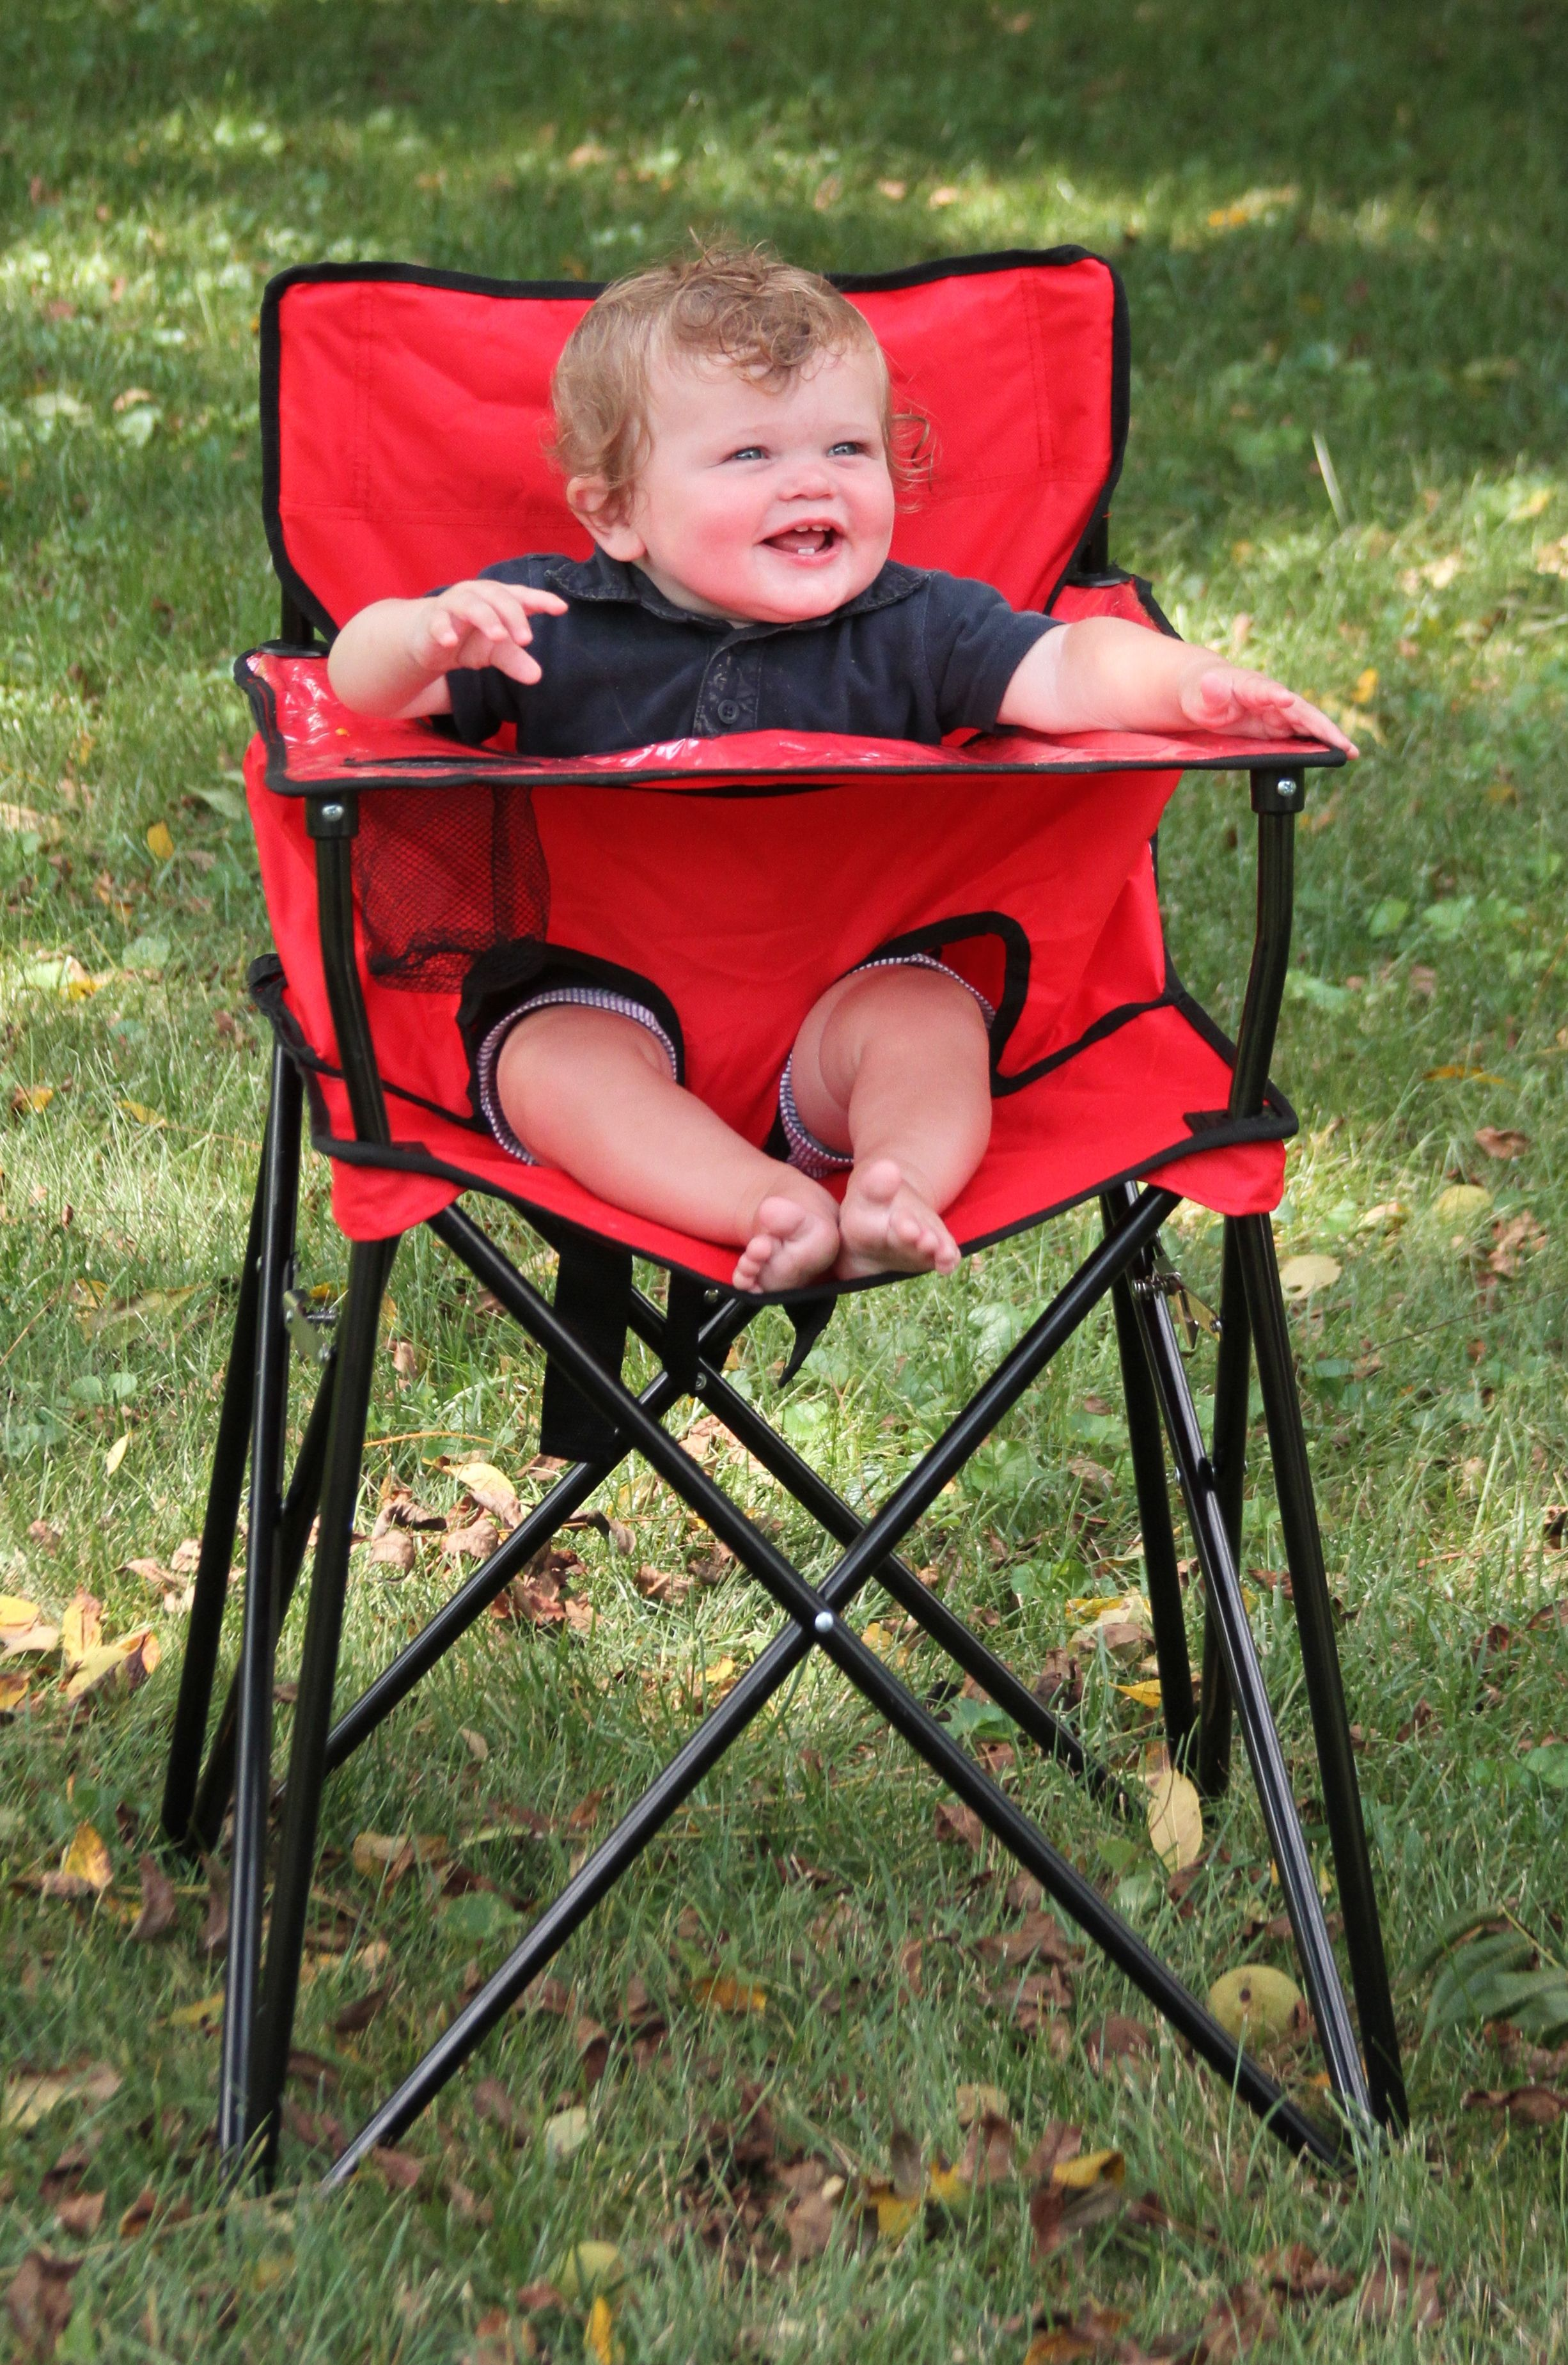 First High Chair Invented Adirondack Rocking Chairs Lowes Portable Oh My Goodness This Is The Best Invention Ever It S Perfect For Picnics Camping Traveling Or Even Just Visits To Grandma